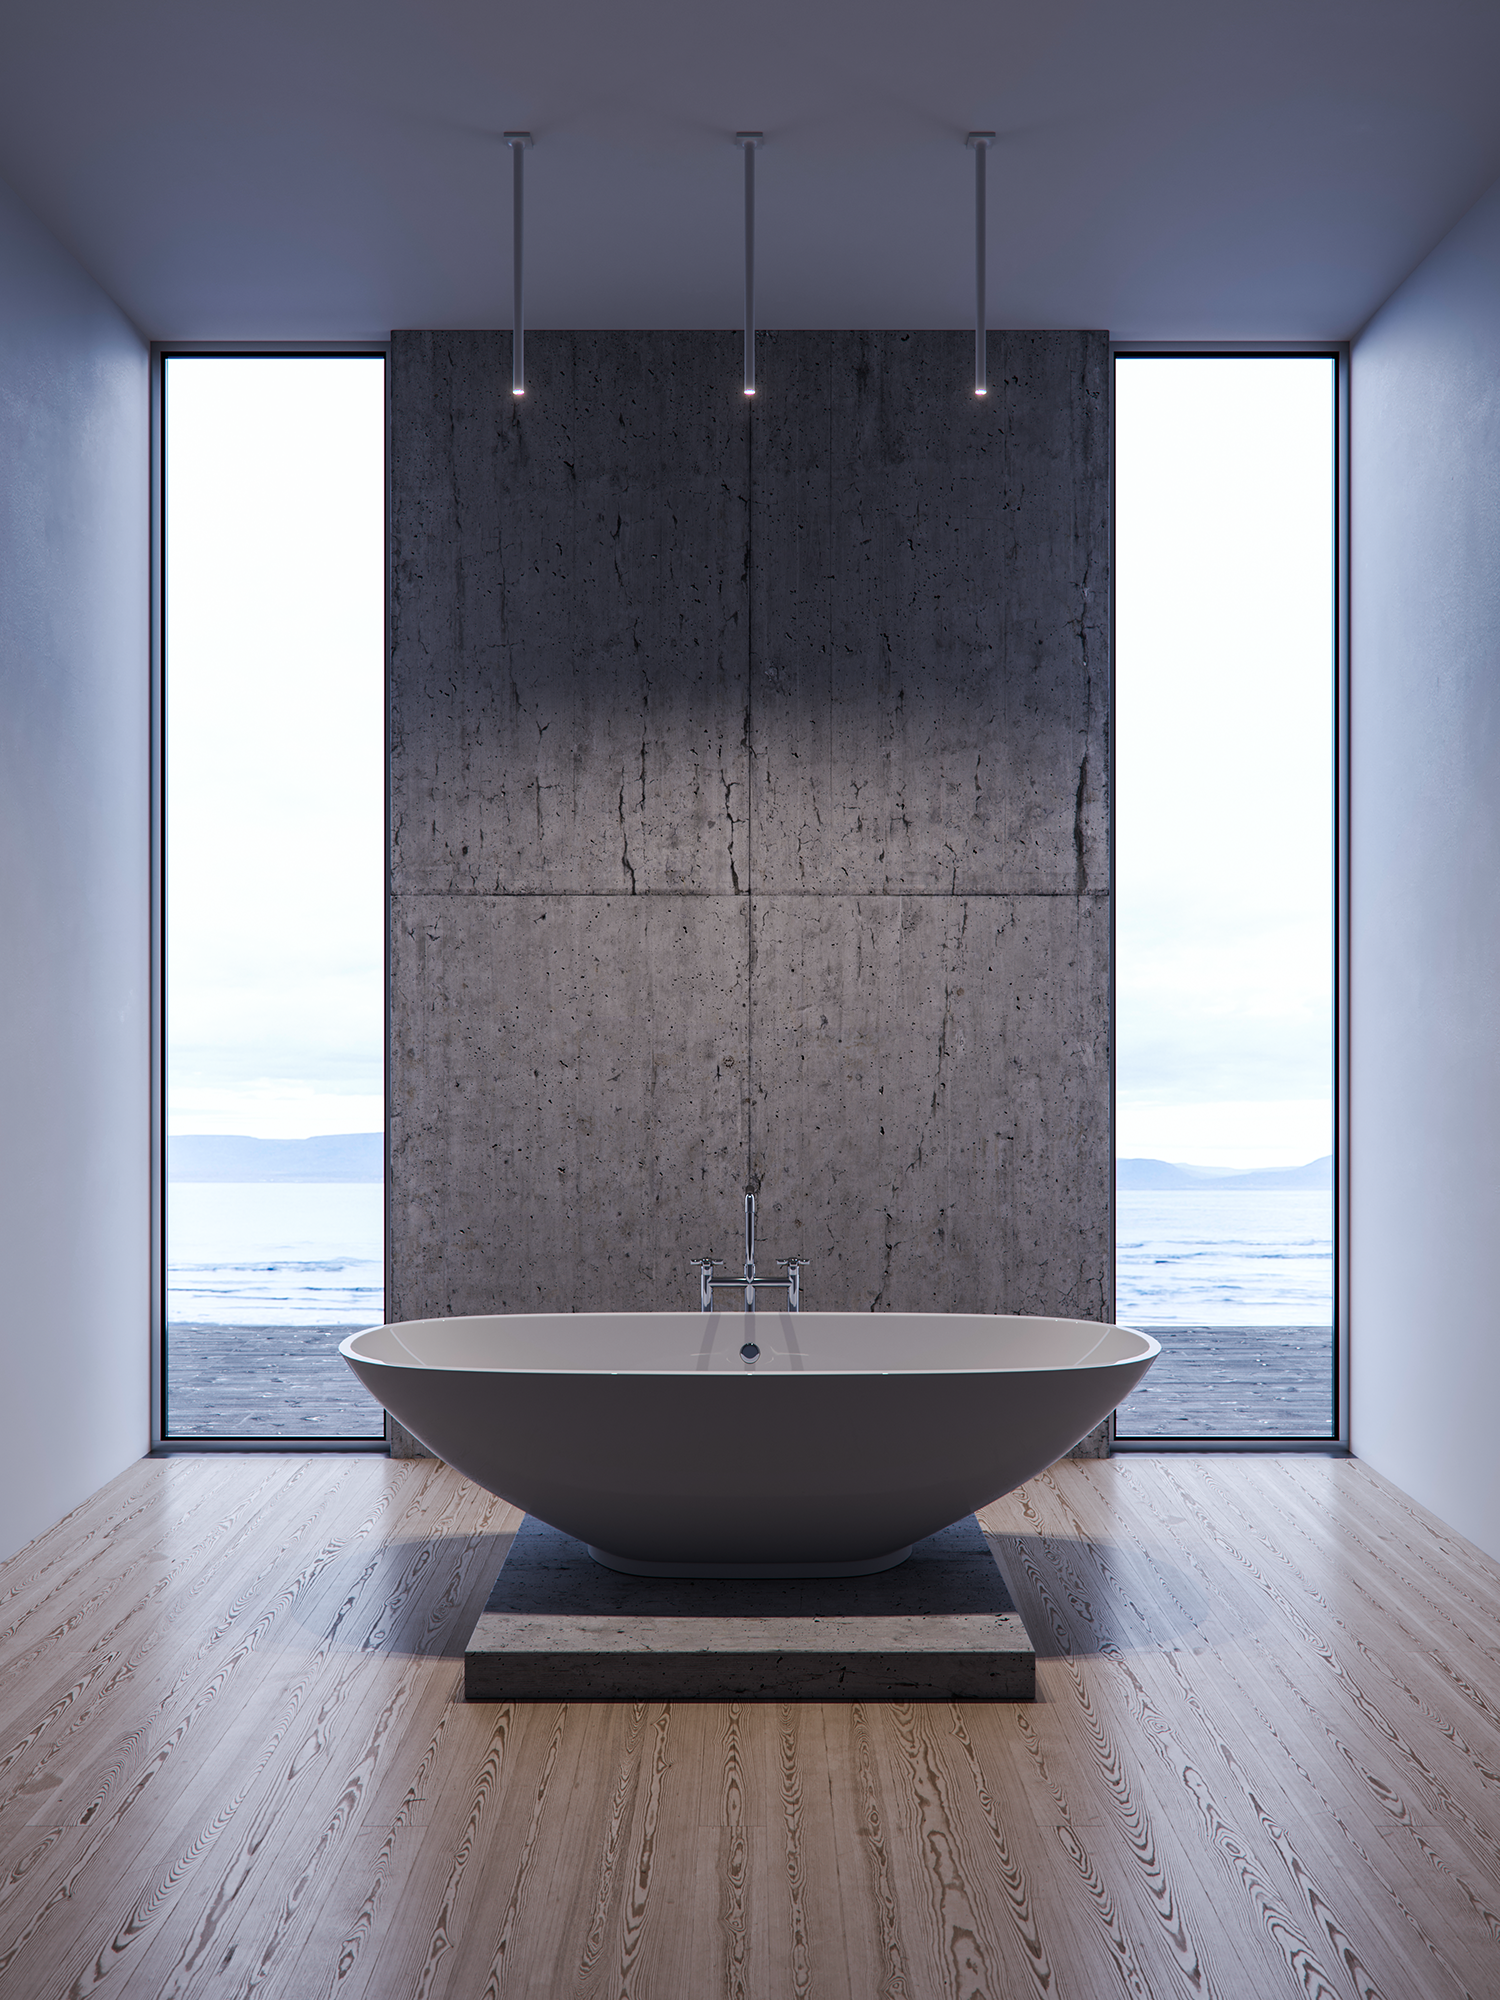 We Show You Some Of The Most Wonderful Bathtubs With Bold Designs